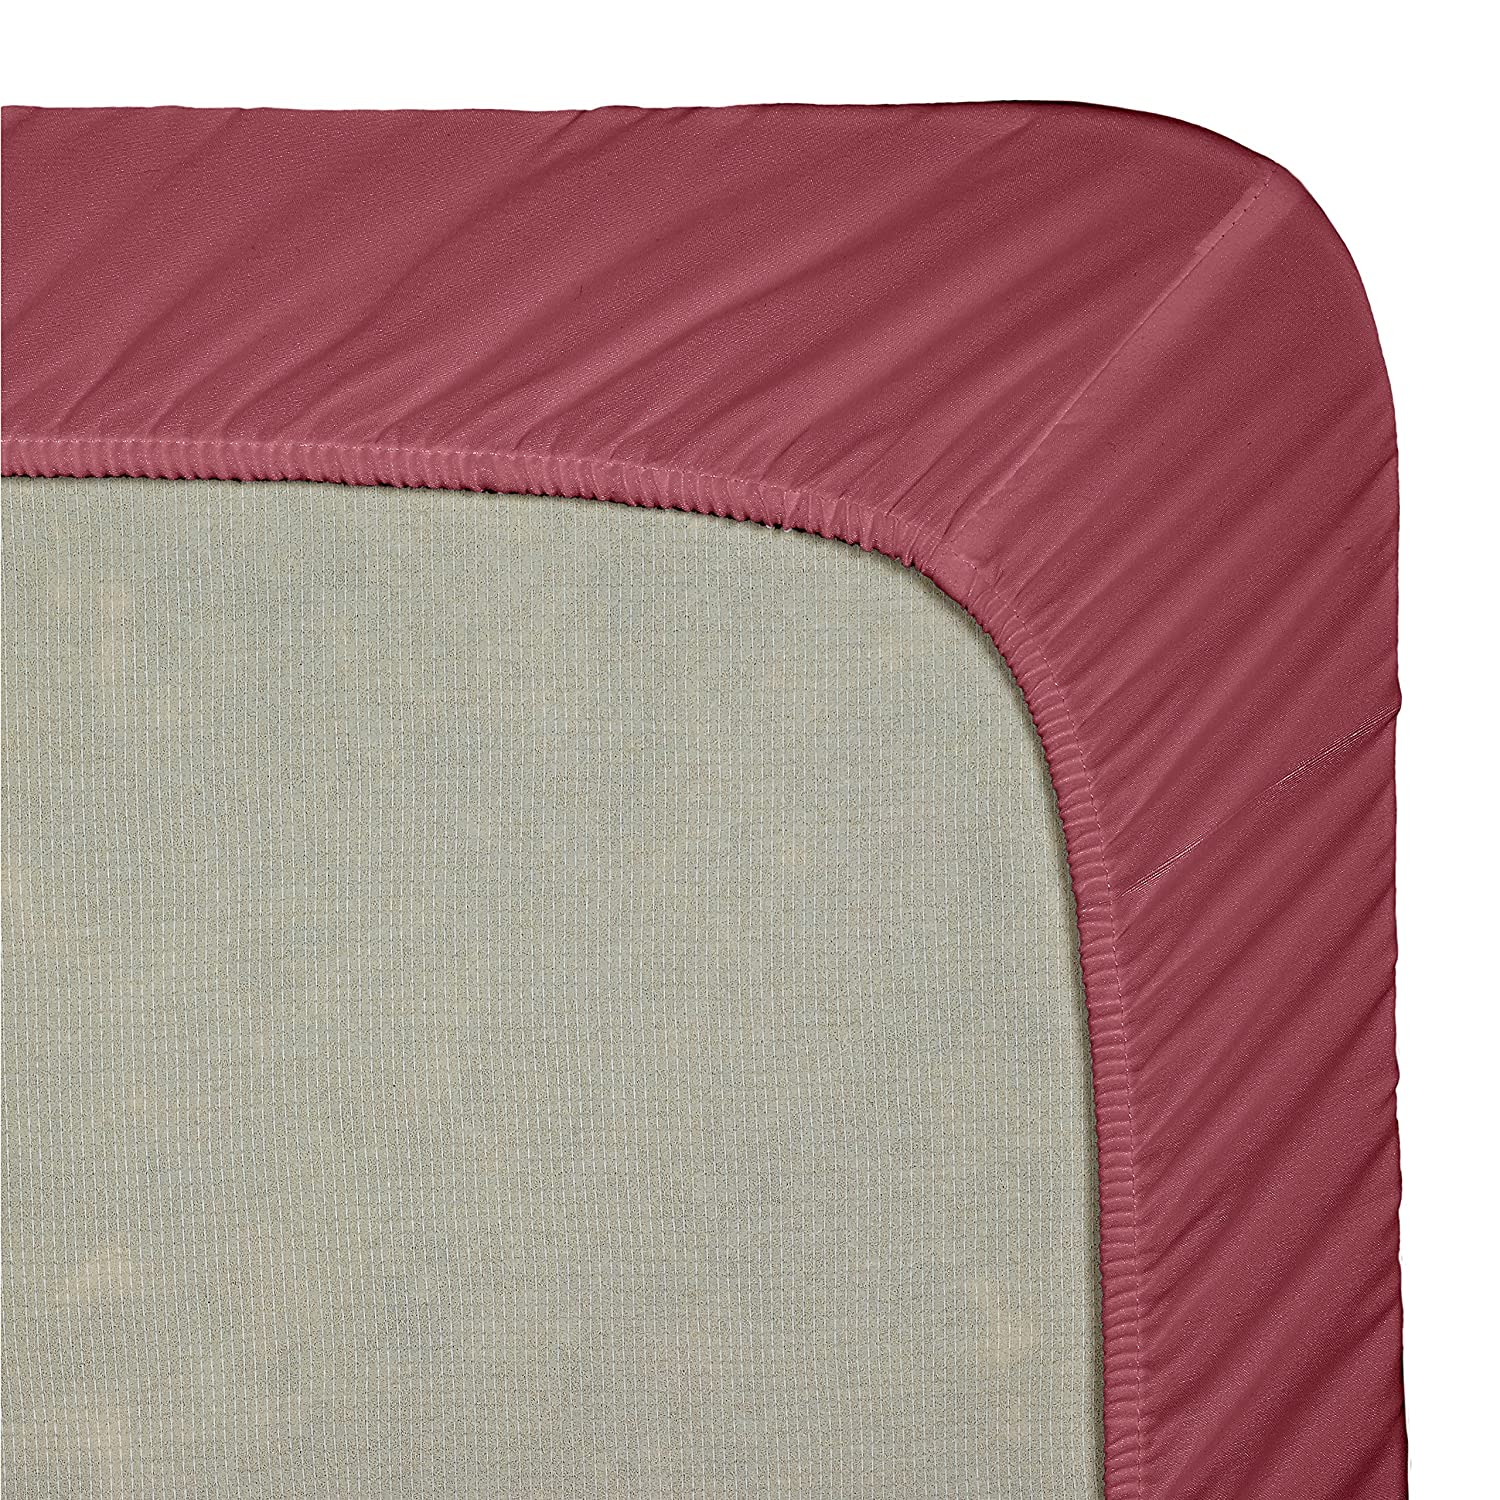 Clara Clark Premier 1800 Collection Single Fitted Sheet Twin Eggplant Purple Sanders Collection VEND-US-CC18-fit-T-Egg